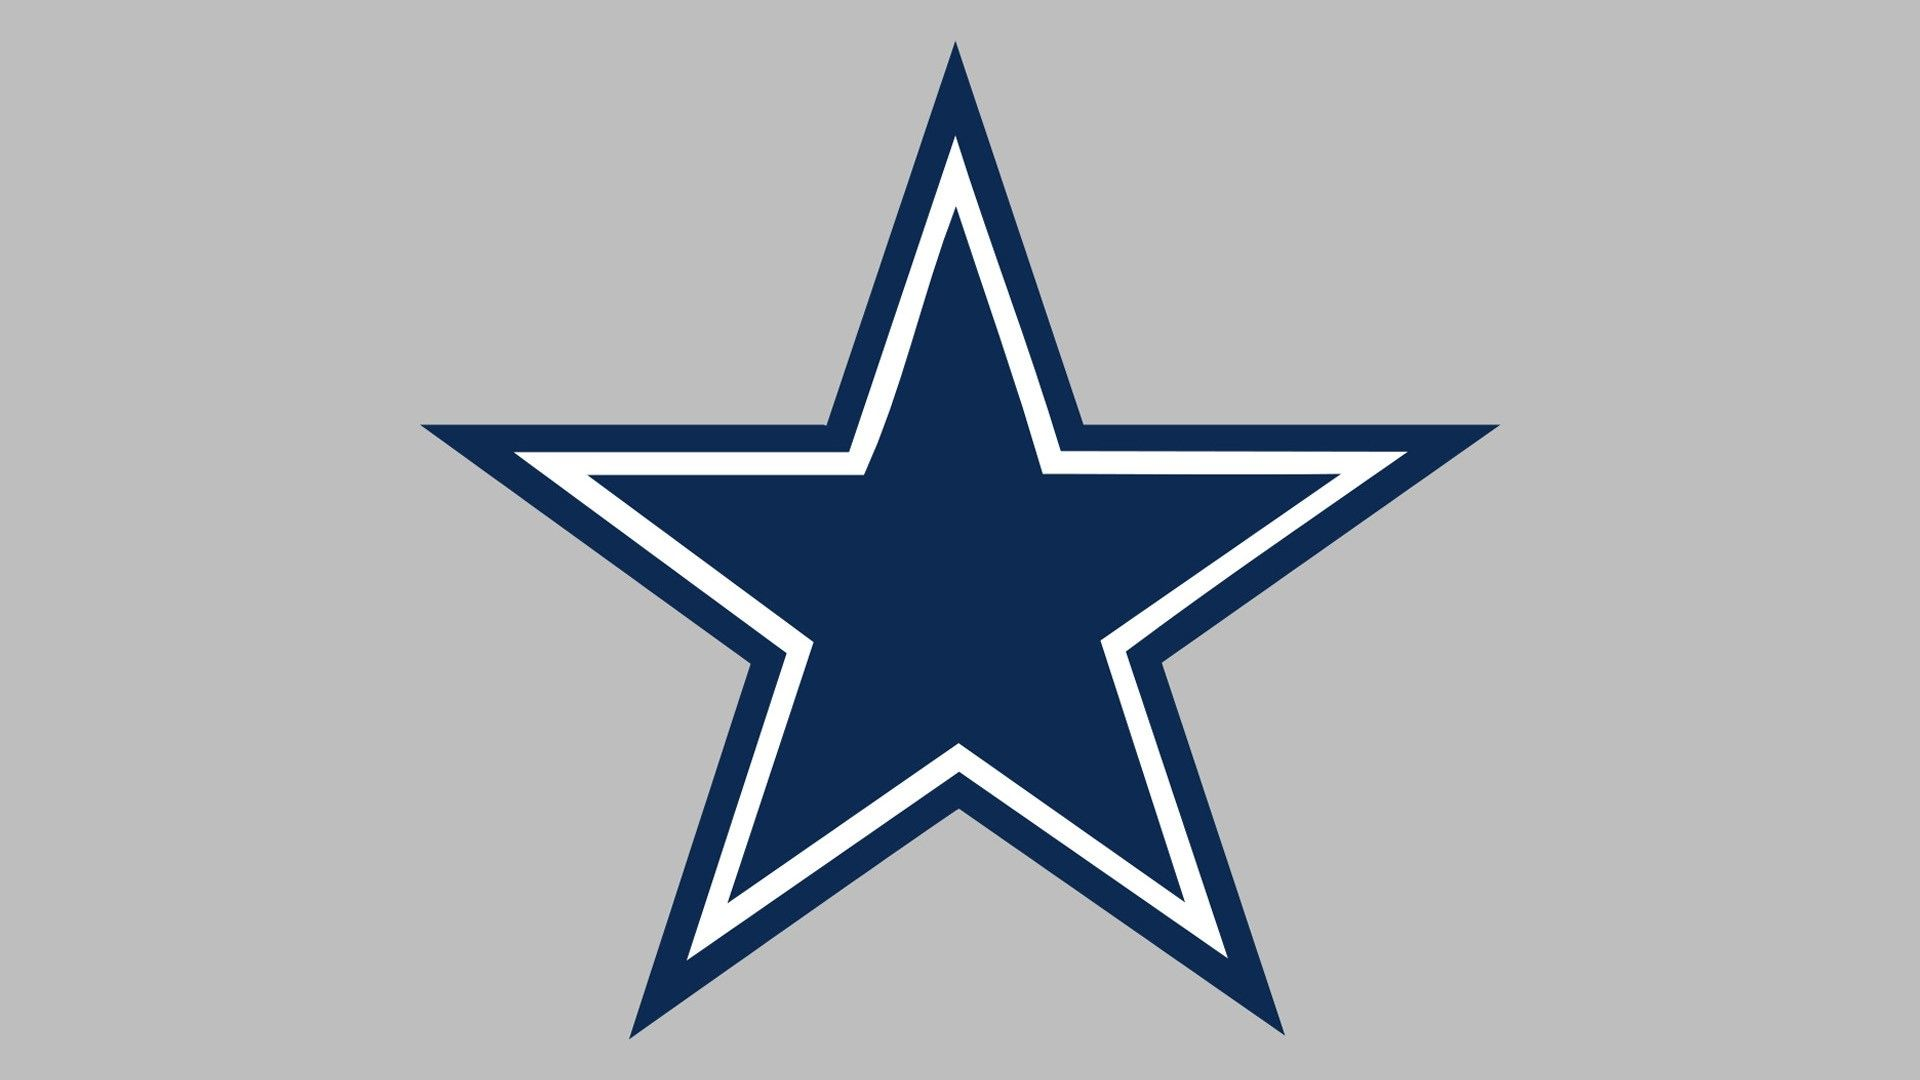 Dallas Cowboys Wallpaper For Mac Backgrounds Dallas Cowboys